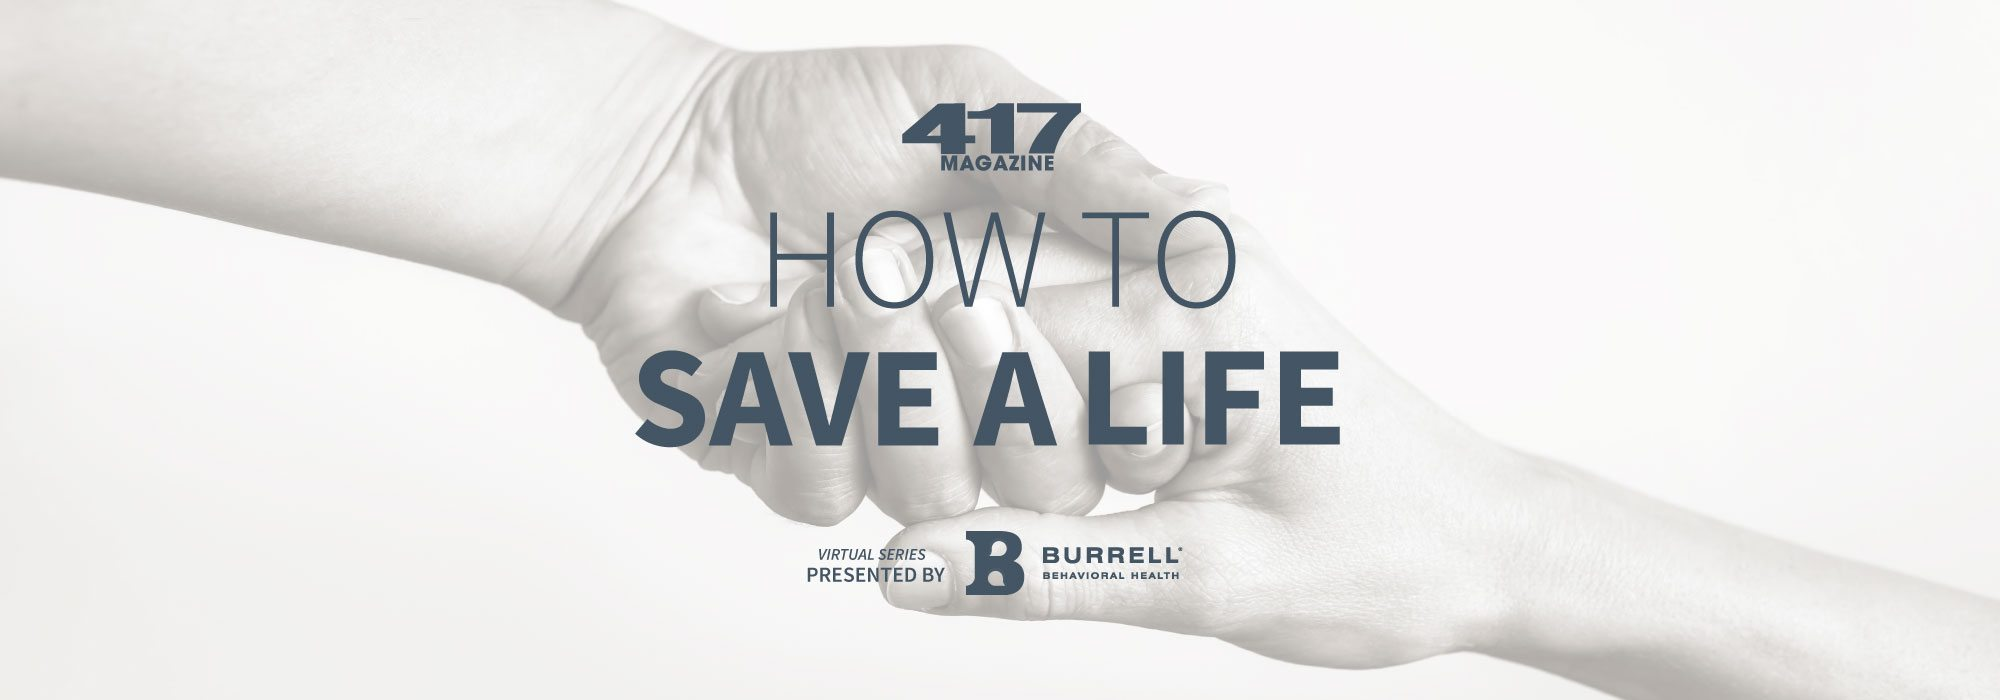 417 Magazine's How to Save a Life Suicide Prevention Series